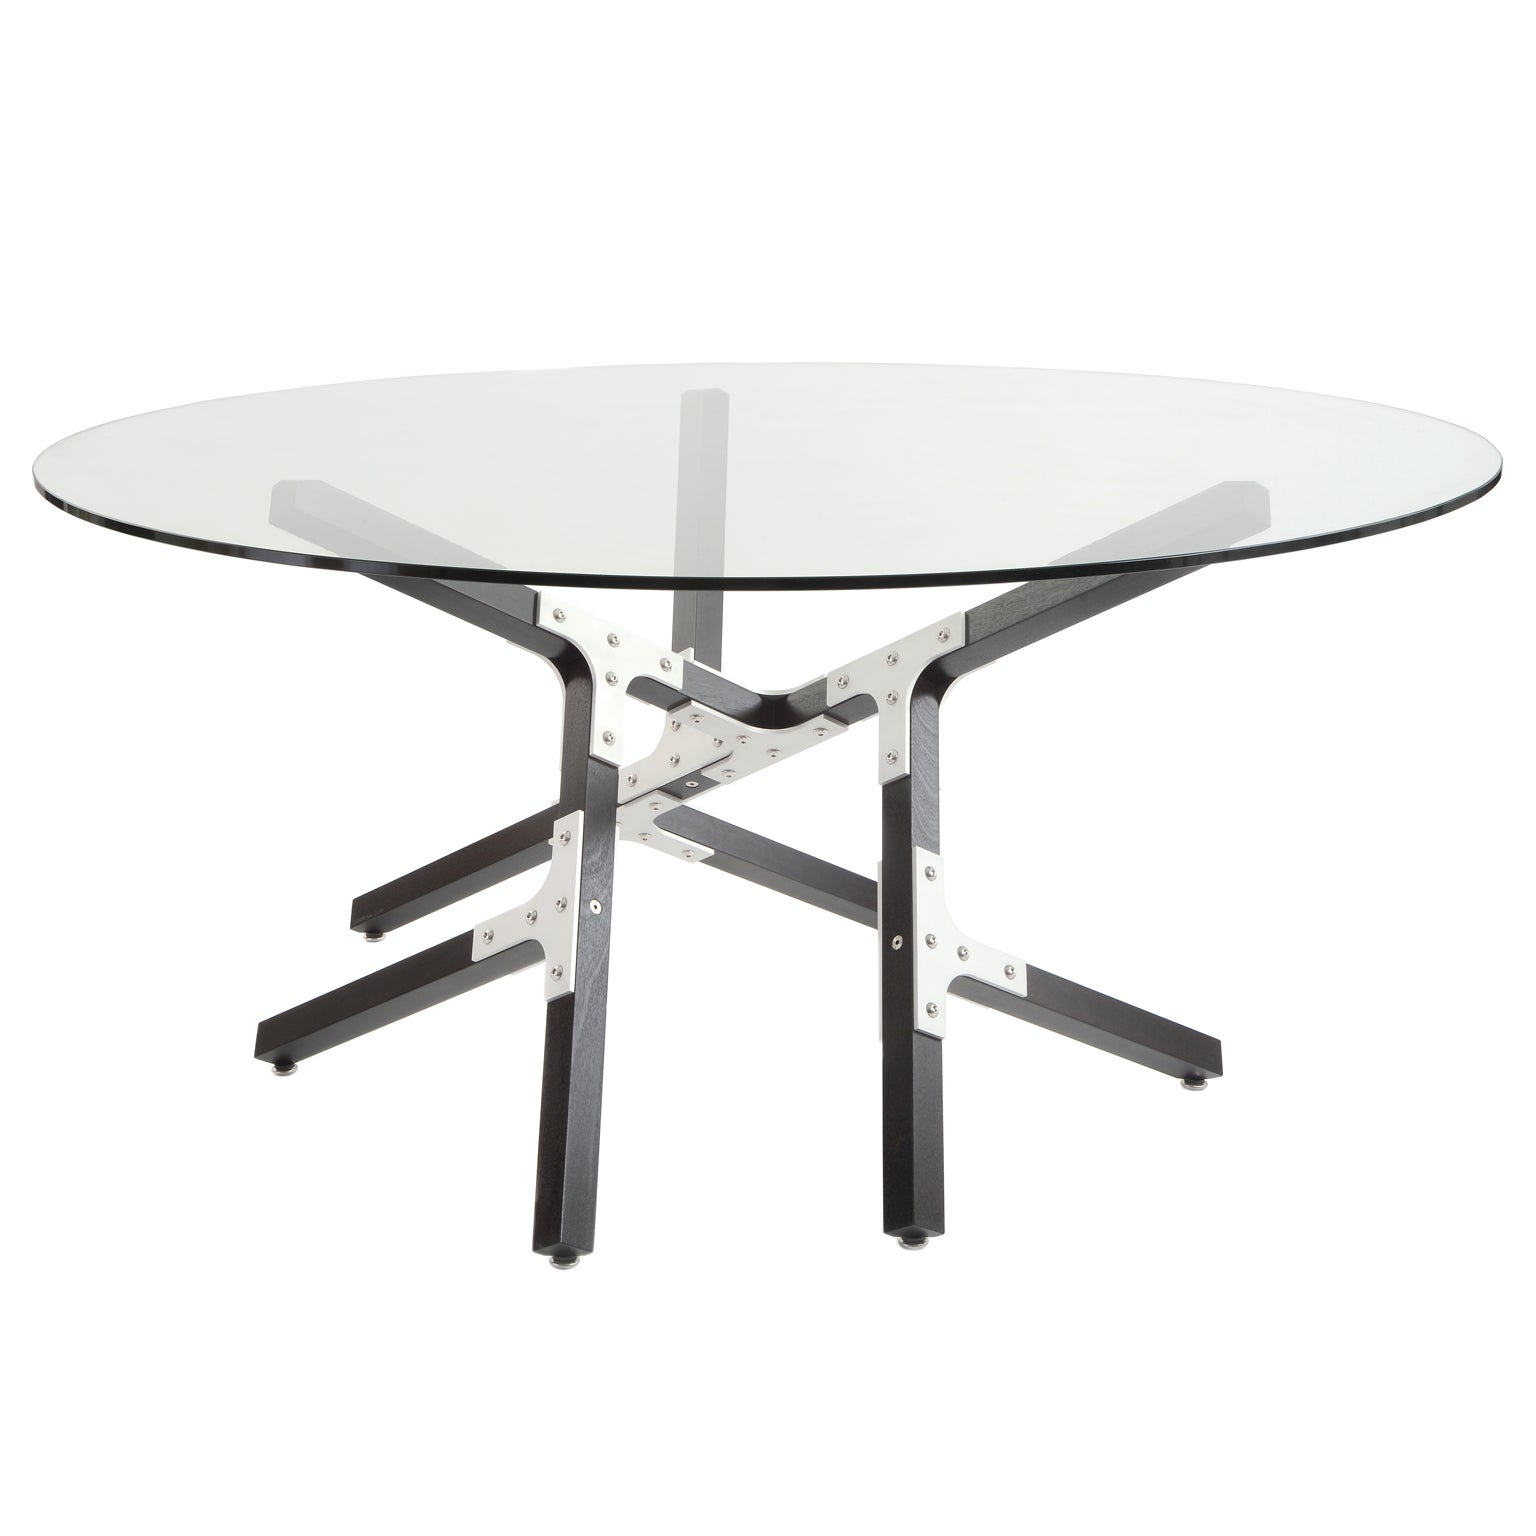 Modern Industrial Dining Table with Round Glass Top Metal and Black Wood